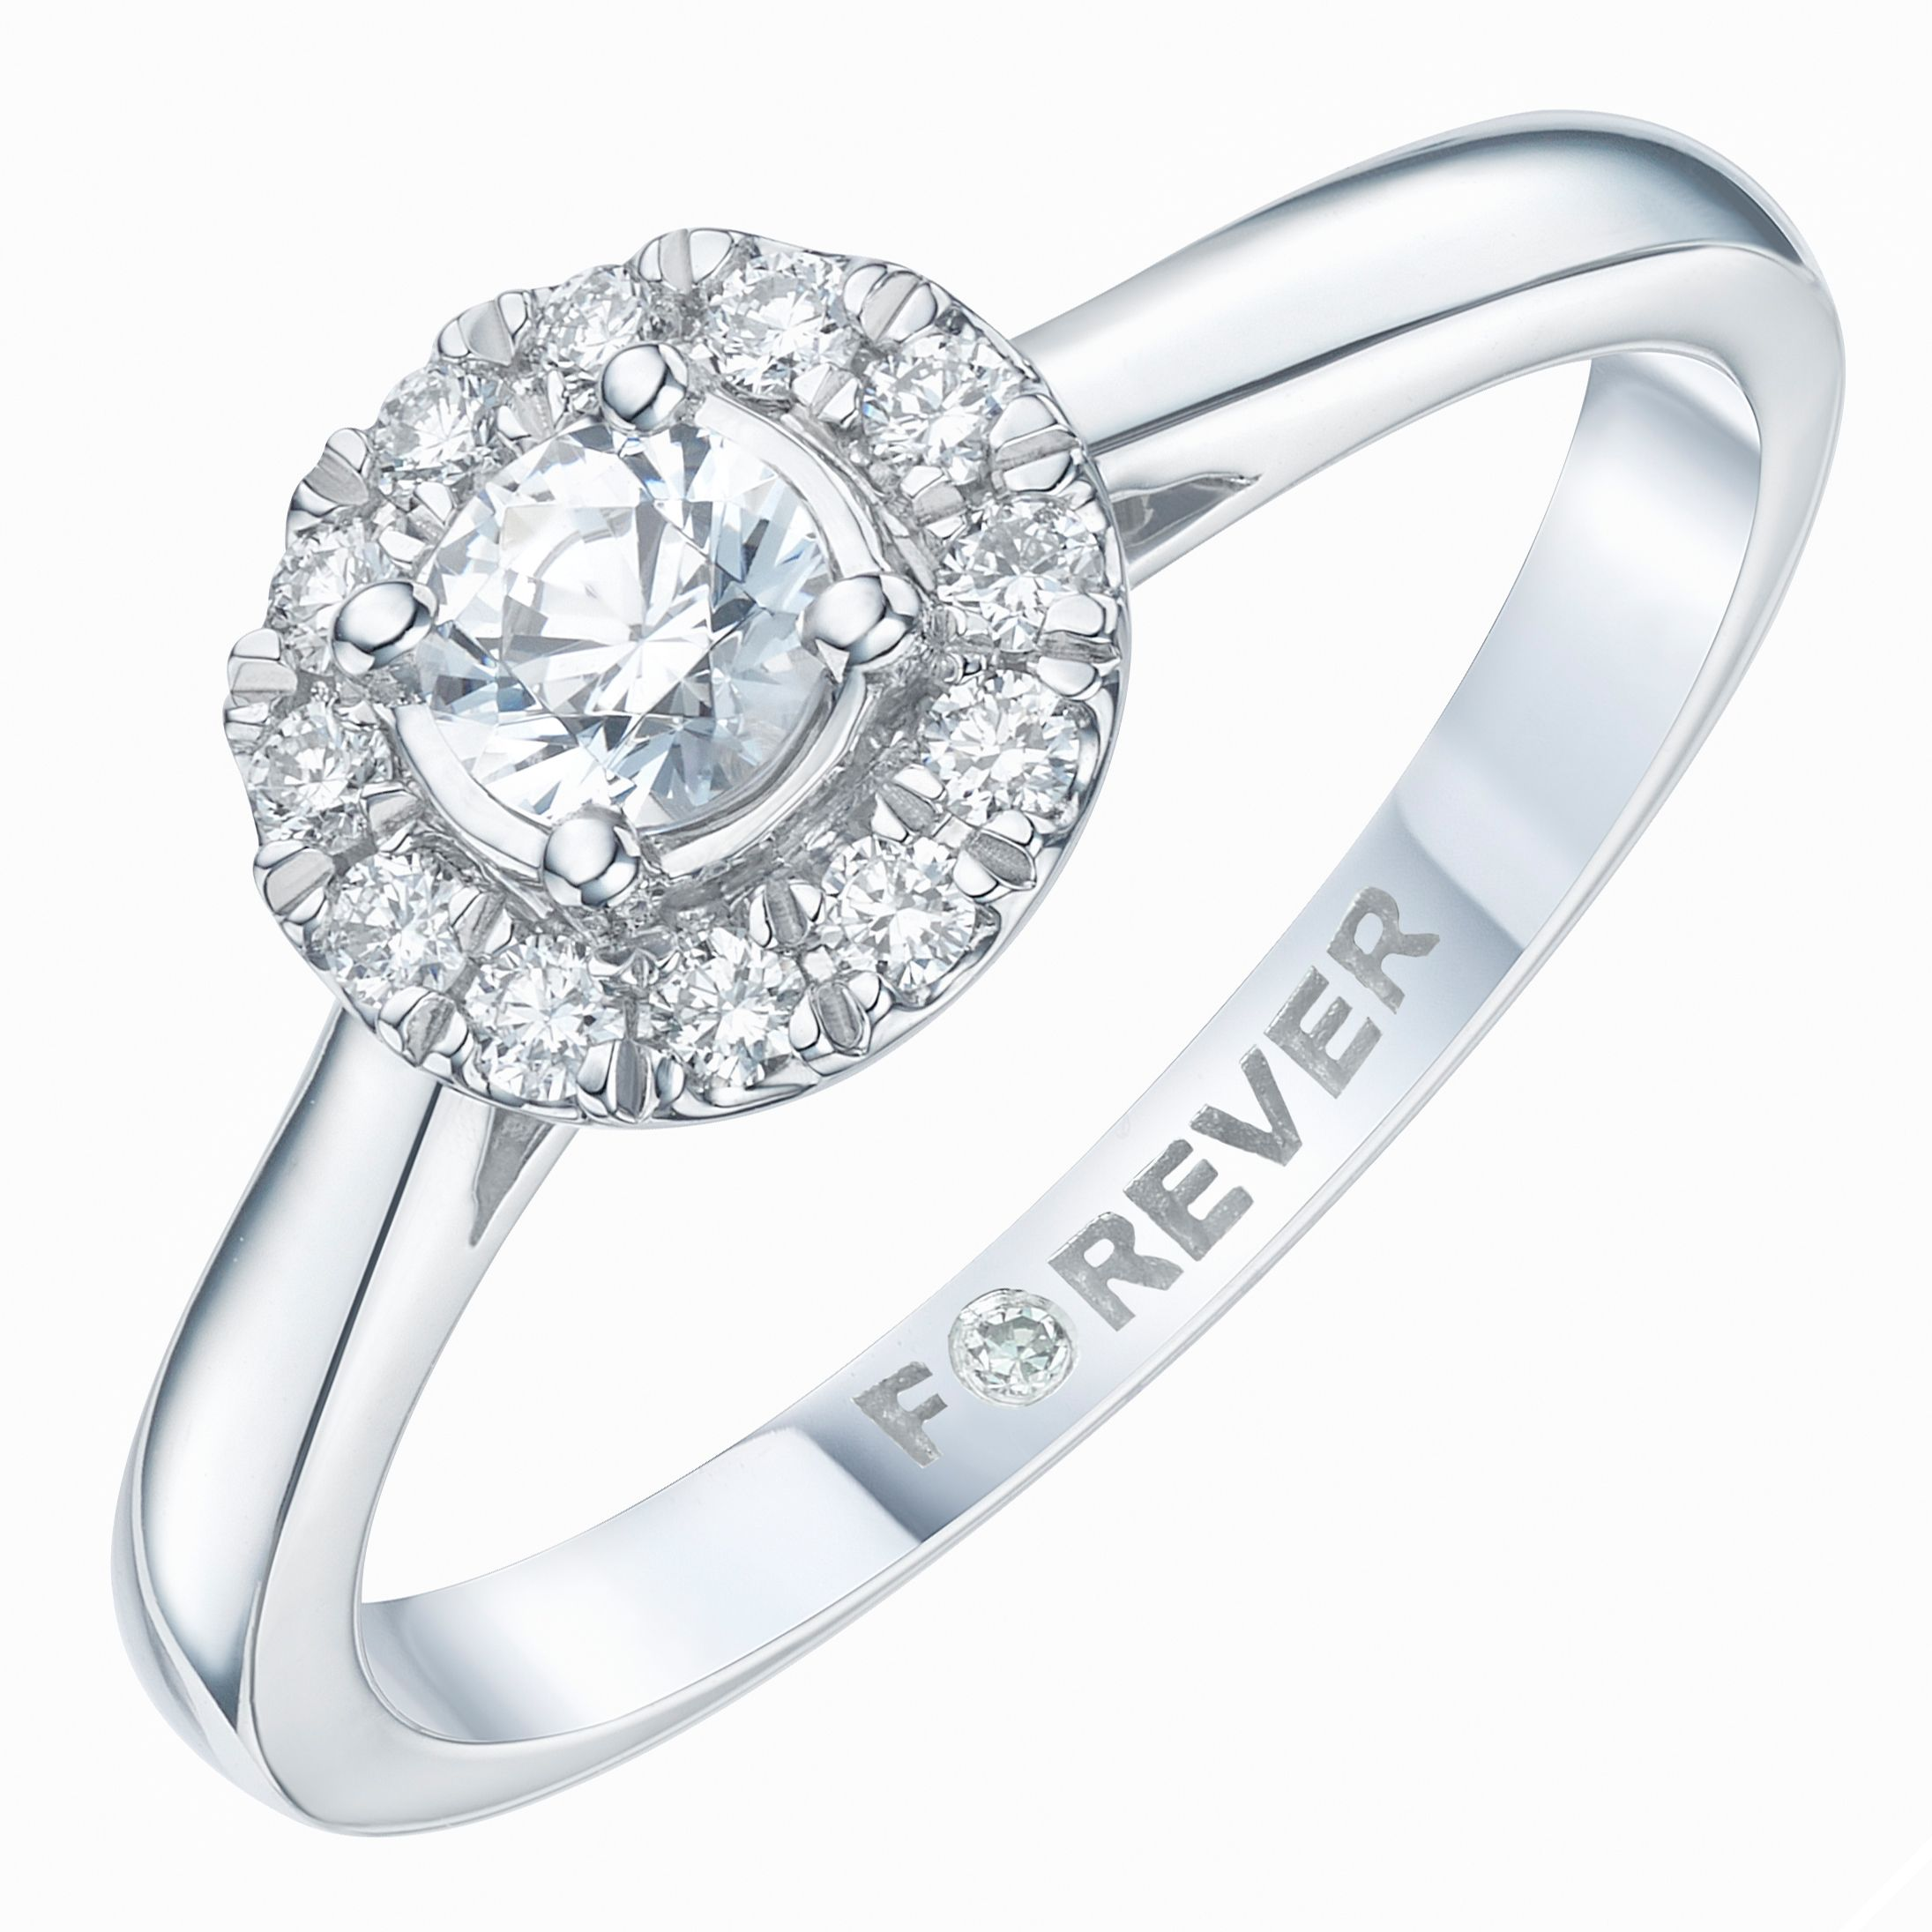 Picking A Classic Engagement Ring From Blue Nile 8211 Opinions Show M Classic Engagement Rings Engagement Rings Simple Round Moissanite Engagement Ring Oval